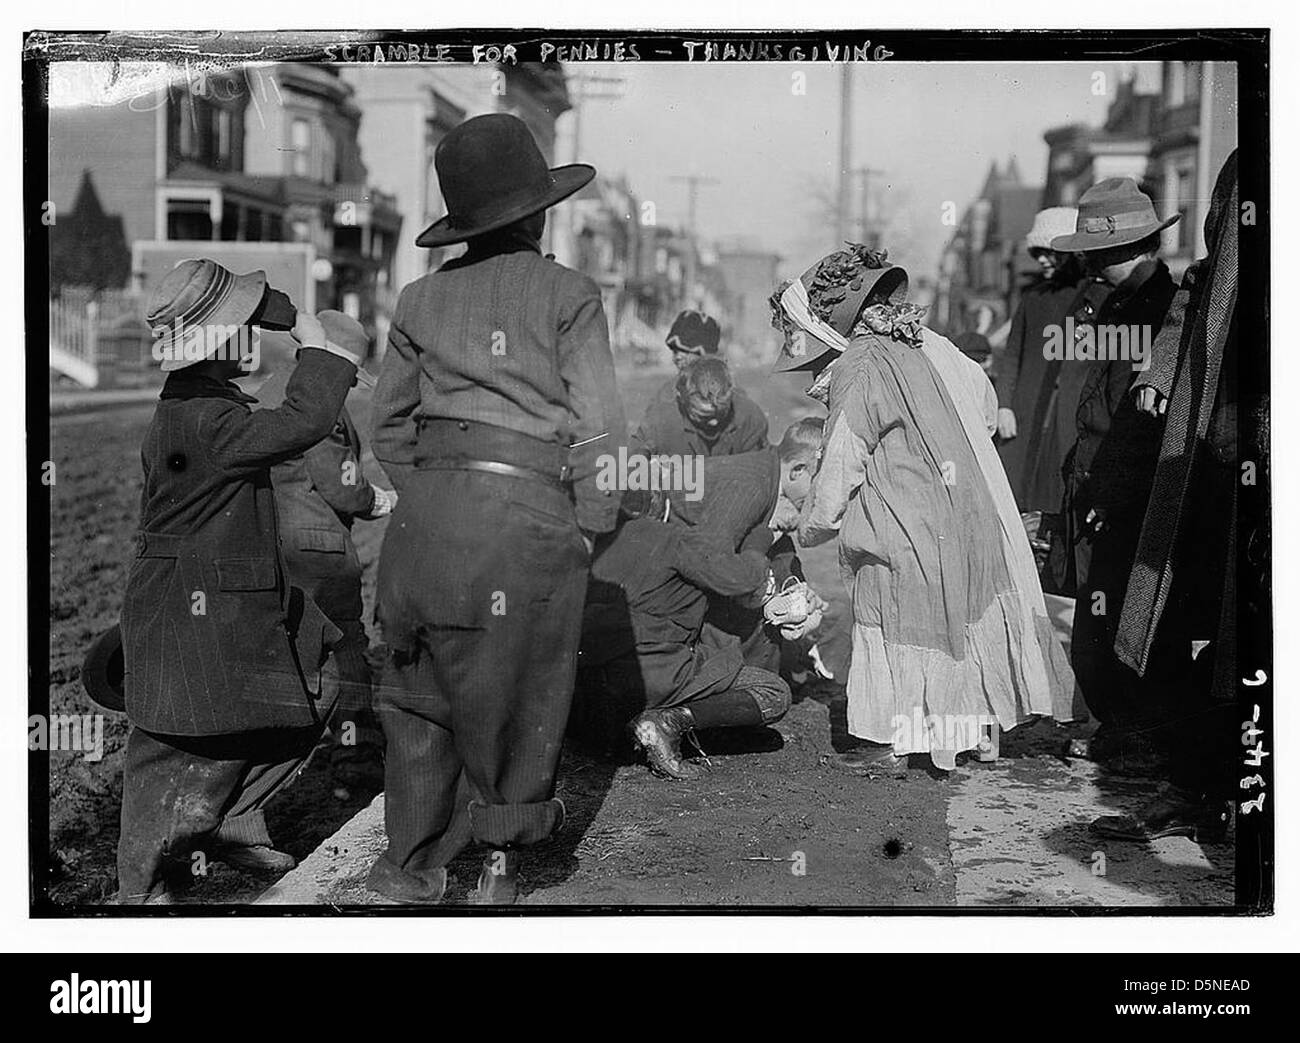 Scramble for pennies, Thanksgiving (LOC) - Stock Image